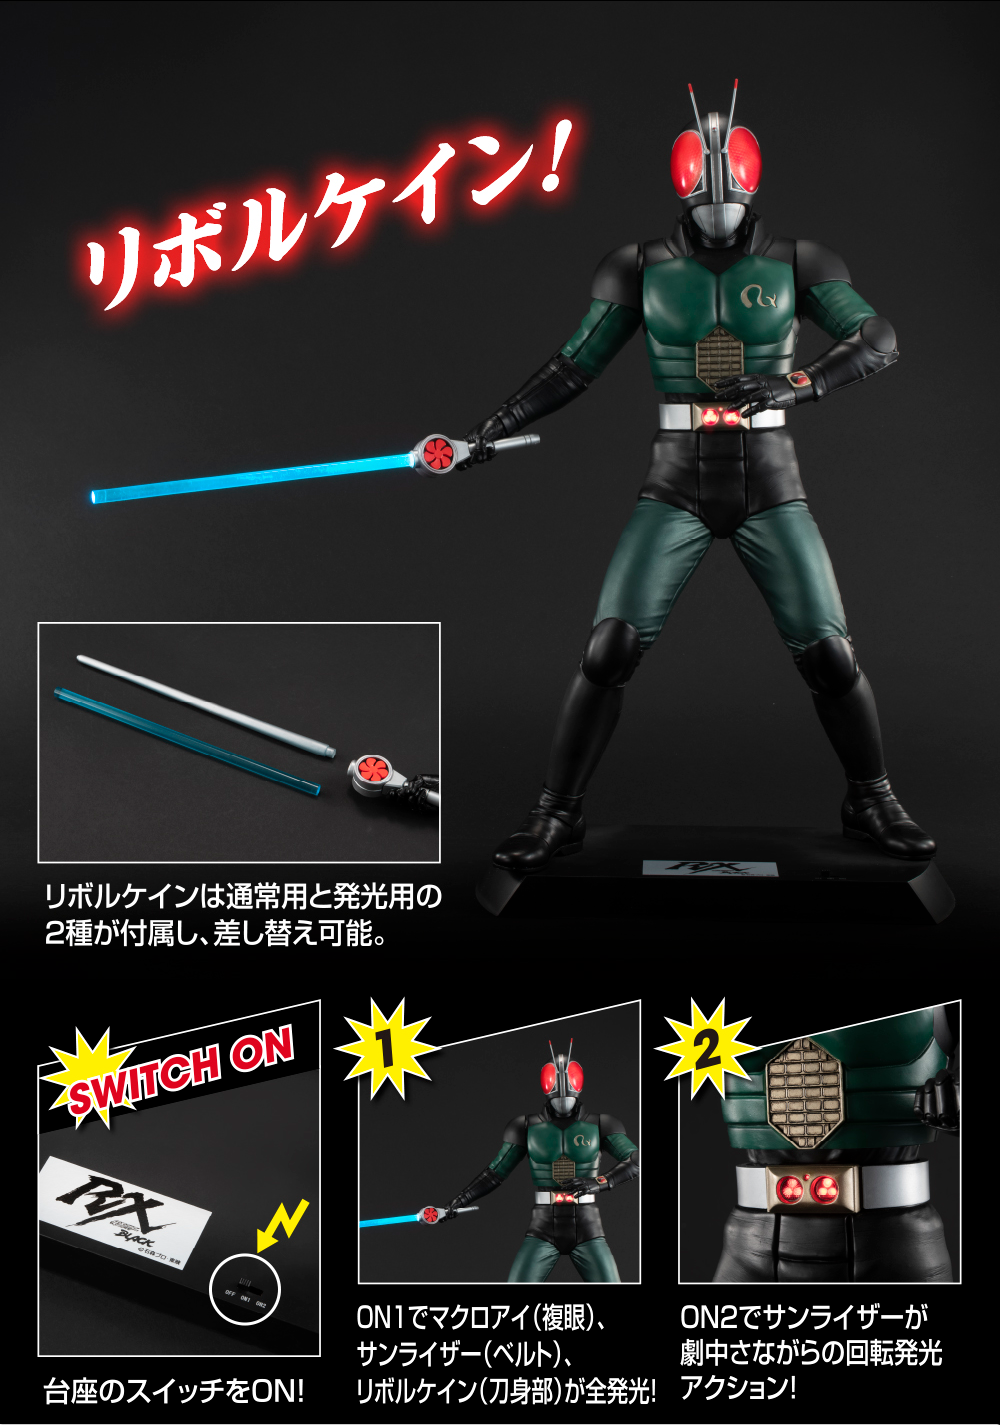 Ultimate Article 仮面ライダーBLACK RX03